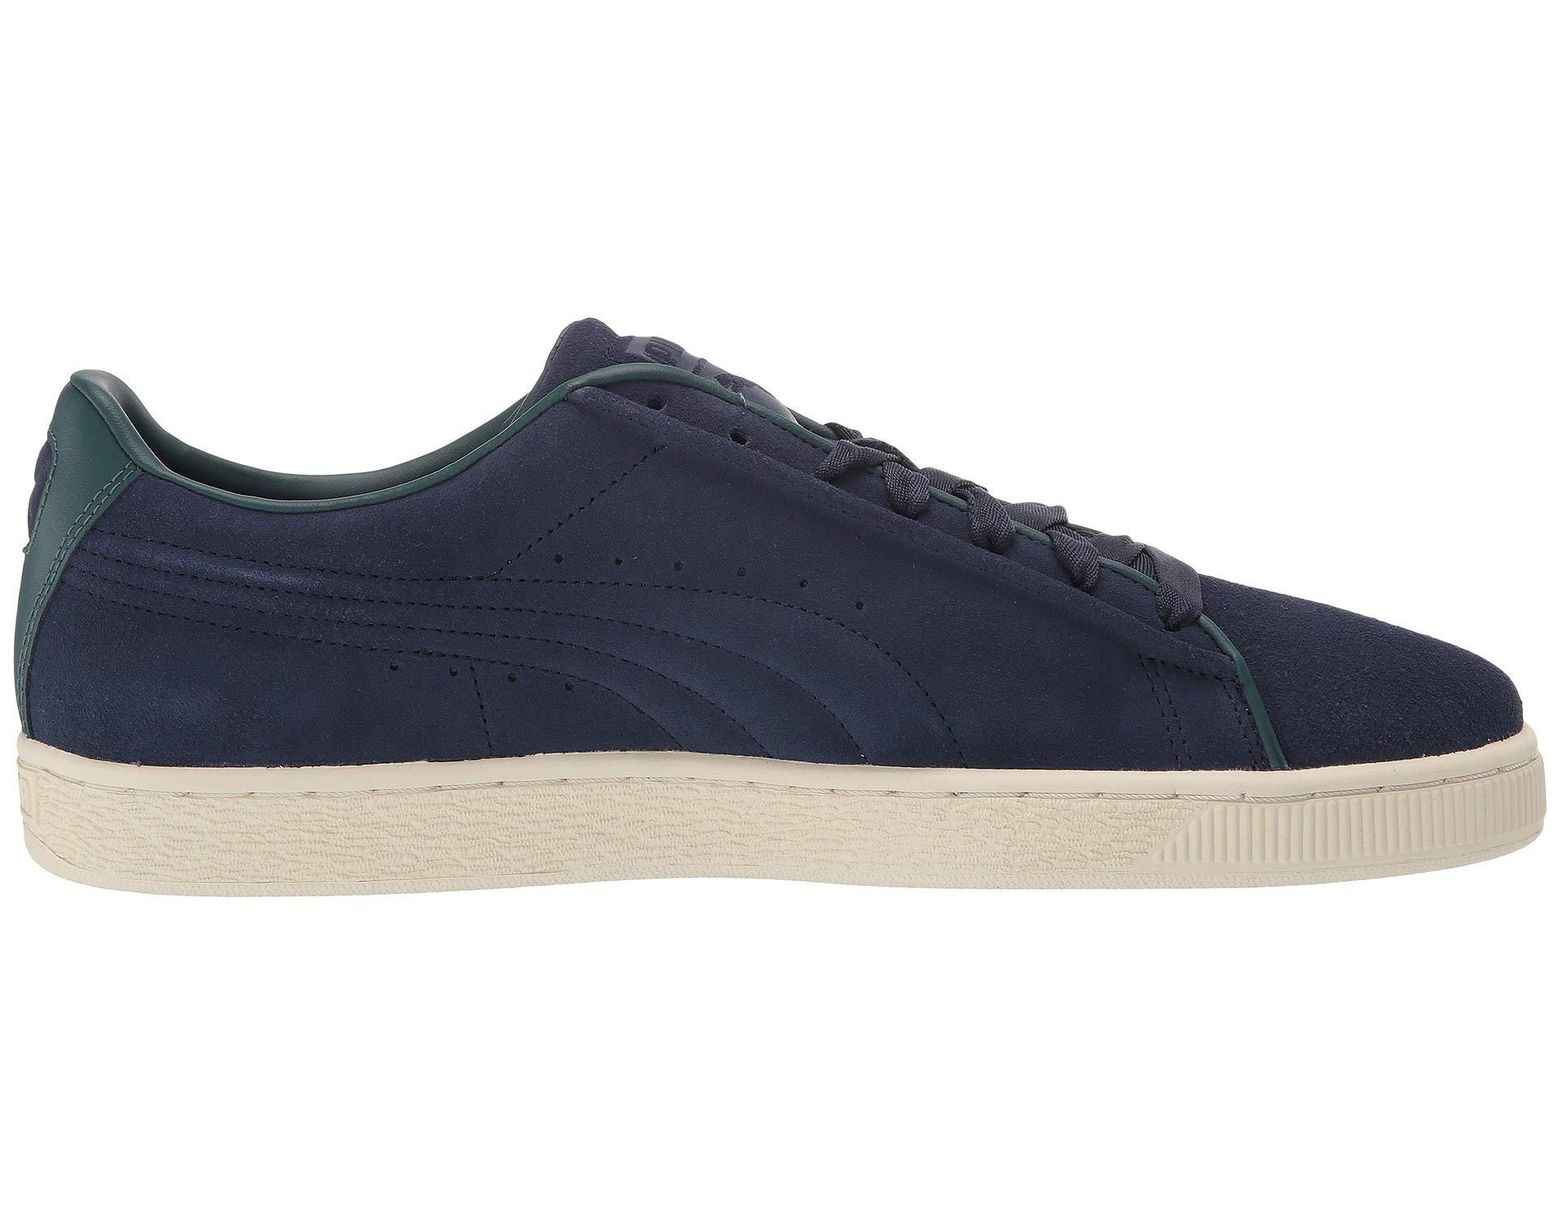 low priced e354d cf8a7 PUMA Suede Classic Raised Formstripe (peacoat ponderosa Pine) Shoes in Blue  for Men - Lyst